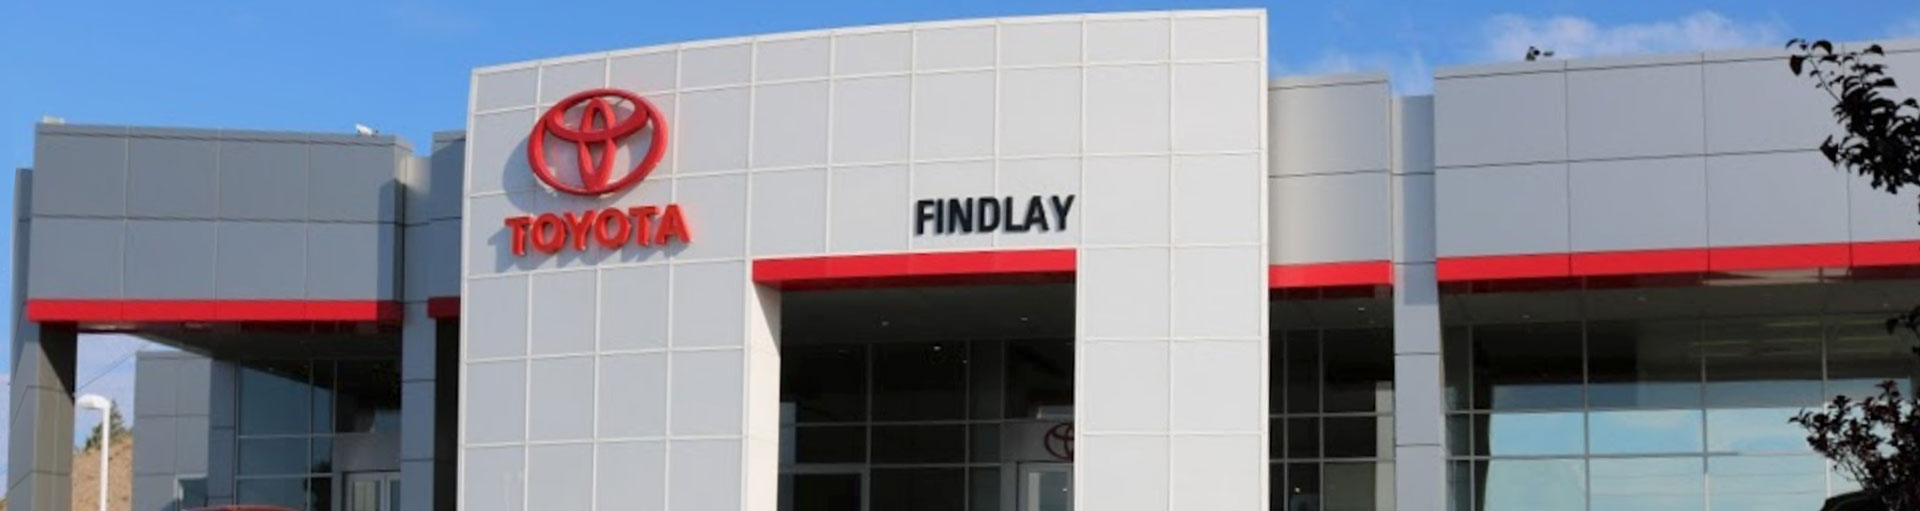 Findlay Toyota of Prescott Service Department